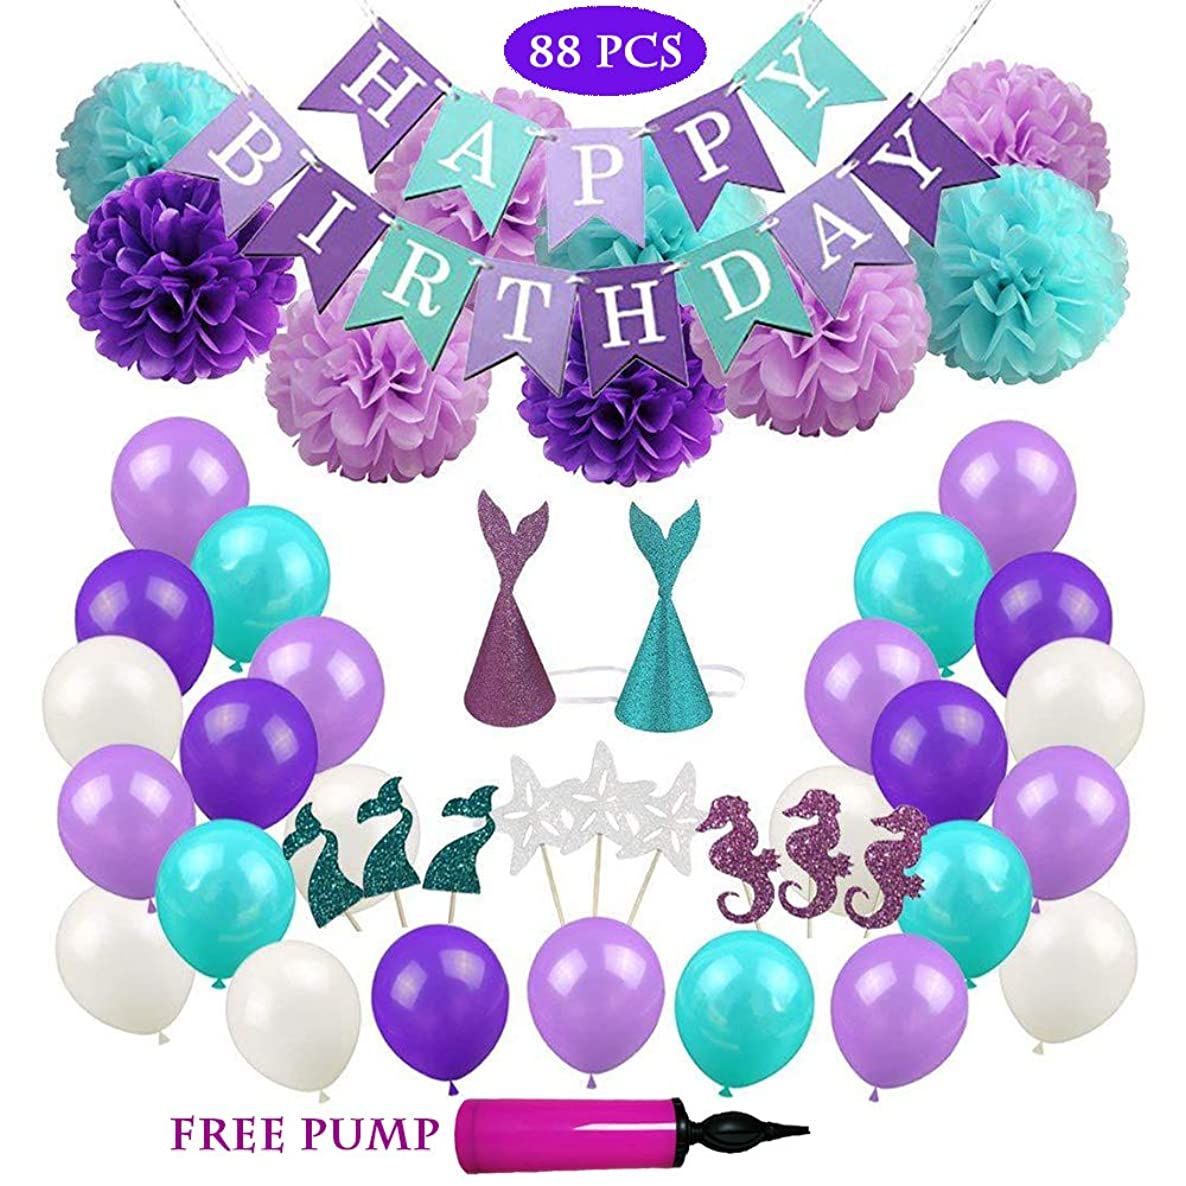 Balloons Decoration for Girls and Women Party, Elegant Purple Mermaid Theme Birthday Balloons Set, Paper Pom Poms Flowers Cupcake Toppers and Hats All in One Pack, (88 pcs) Free Pump.